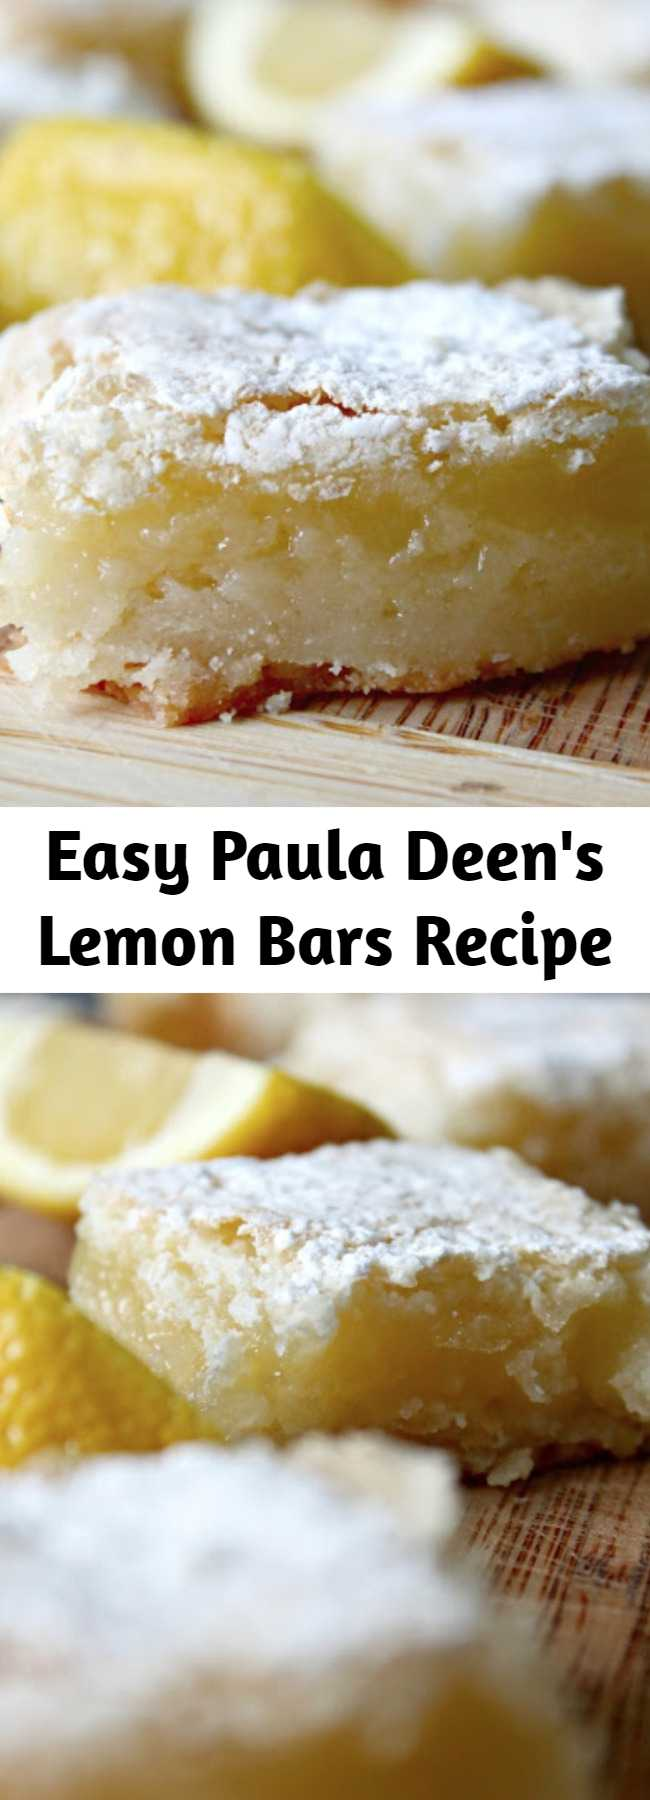 """Easy Paula Deen's Lemon Bars Recipe - If you're looking for a fairly quick and light dessert, this one is perfect. I like what Paula said in the magazine and it's wonderfully true, """"I love making these because you don't even have to pull out a mixer."""" Thanks, Paula, for making it easy on us."""